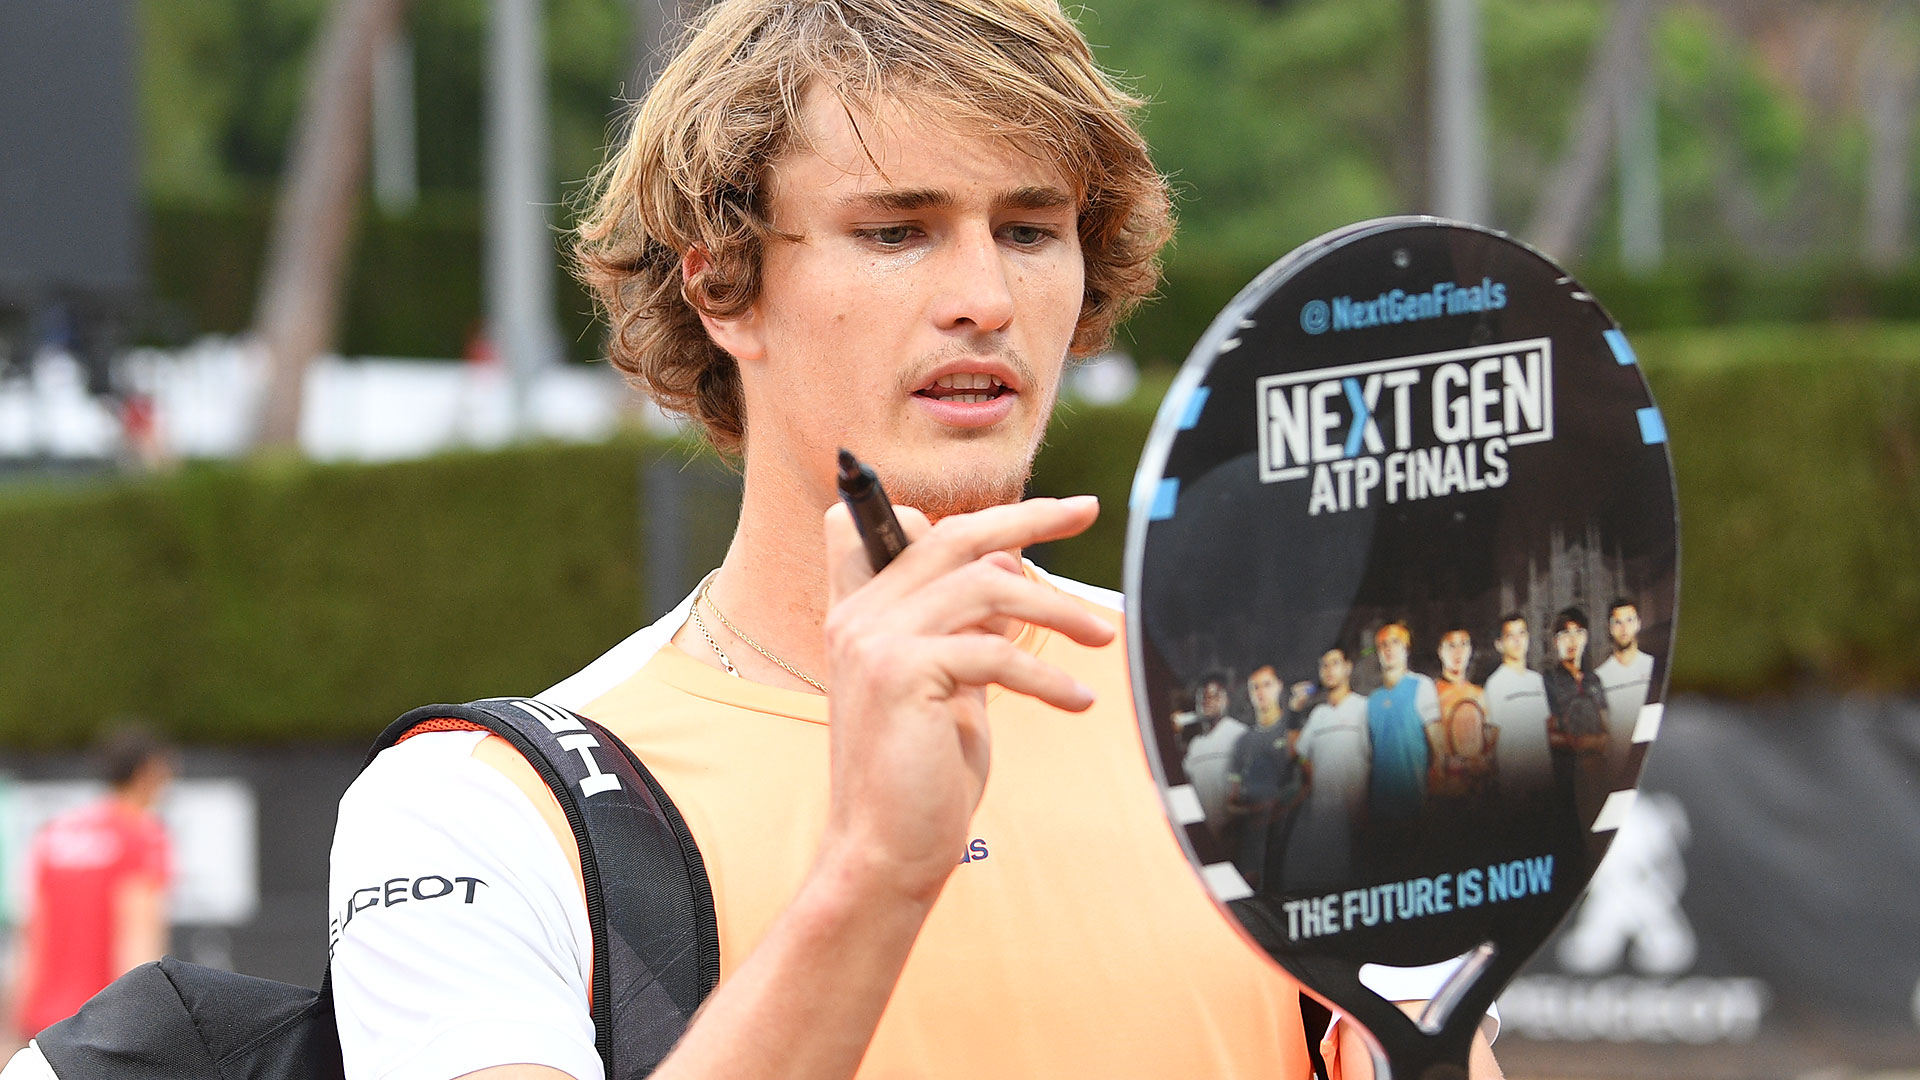 ATP Tennis Fans React to Screwy Rule Changes 2017 images